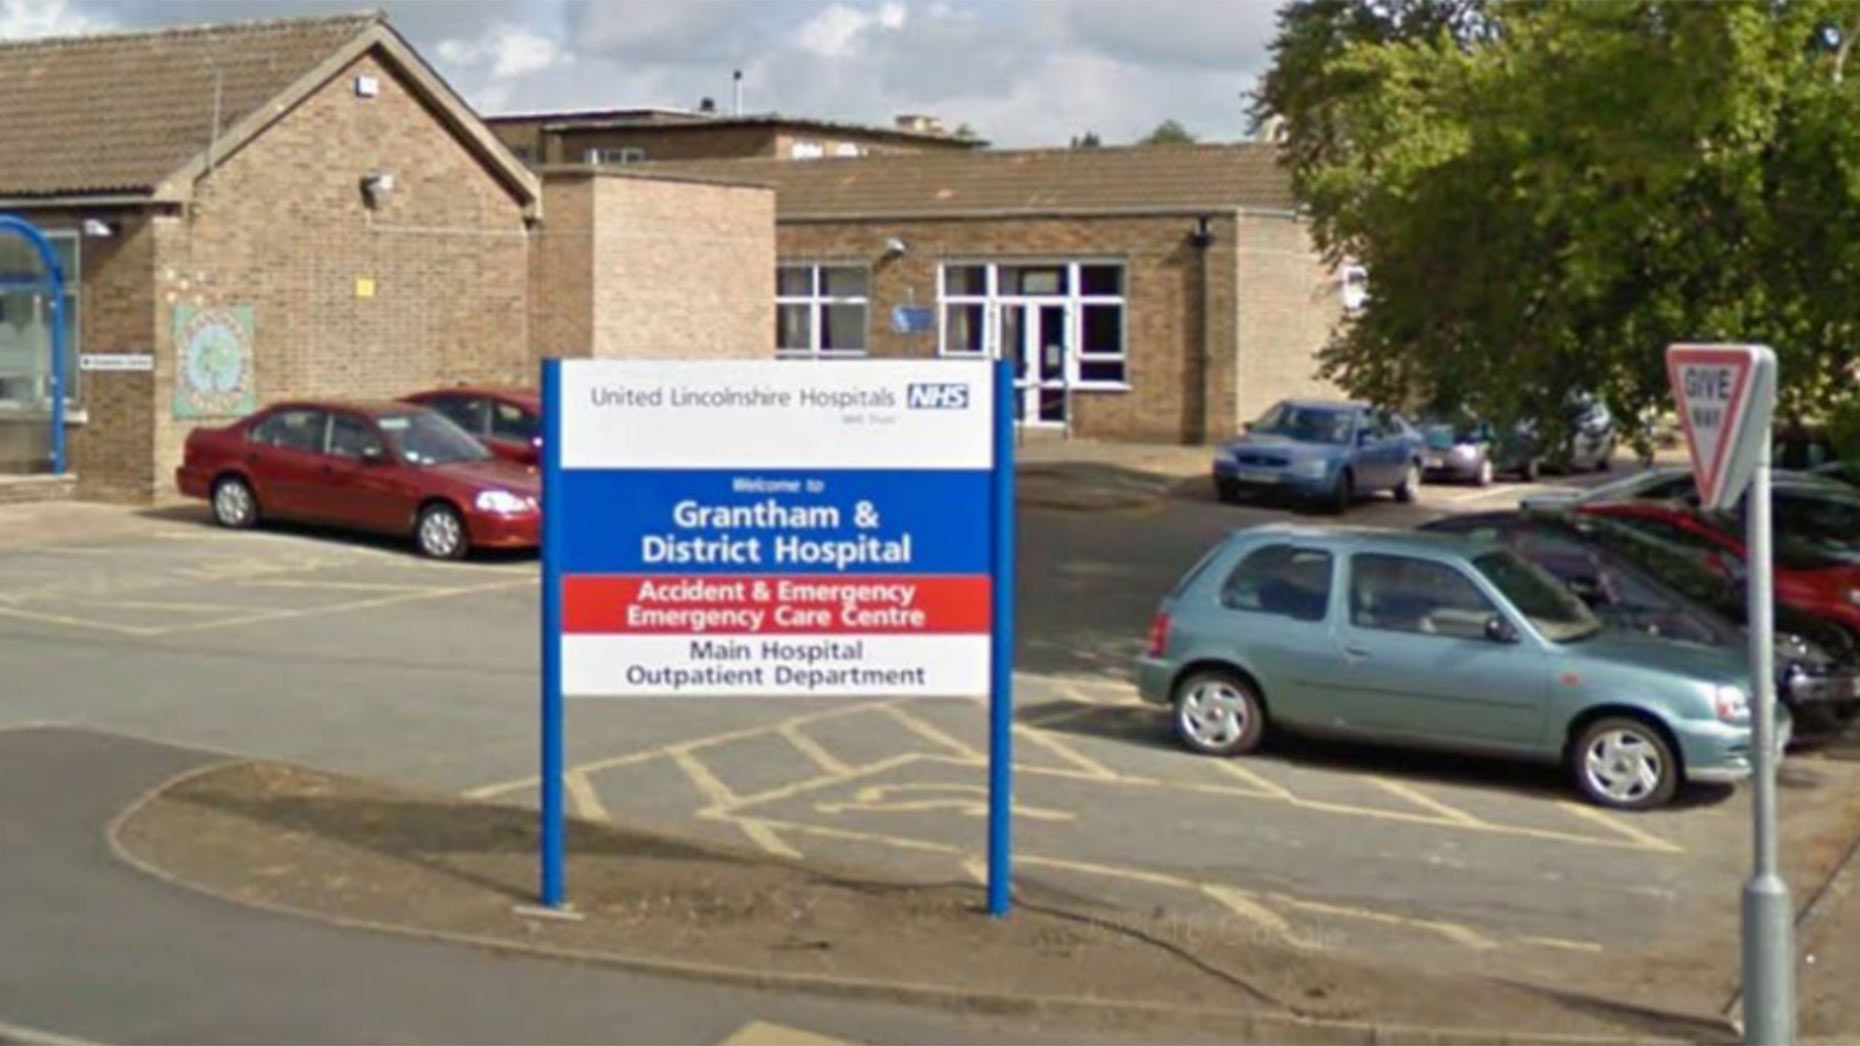 Health officials and politicians have been reacting to the announcement by ULHT. Photo: Google Street View